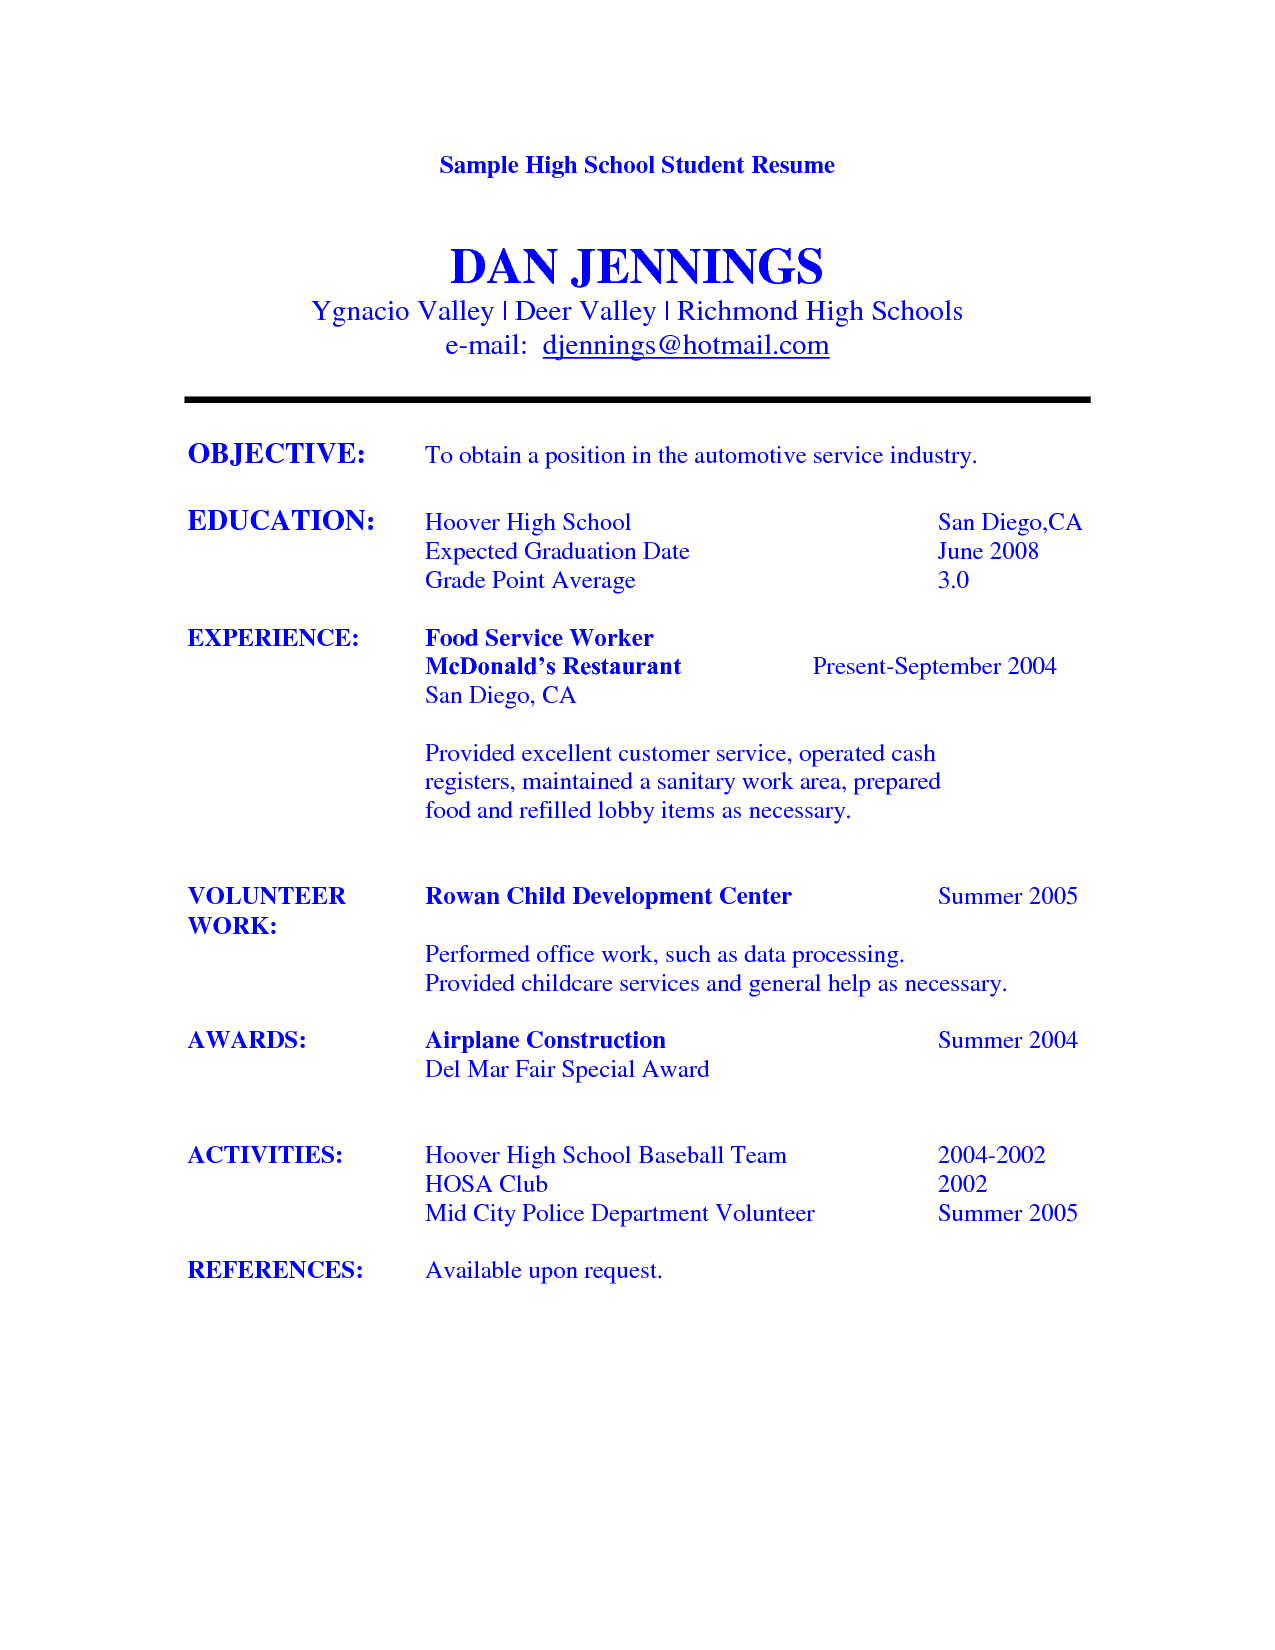 Resume Samples For High School Students Resume Example For High School Student Sample Resumes  Httpwww